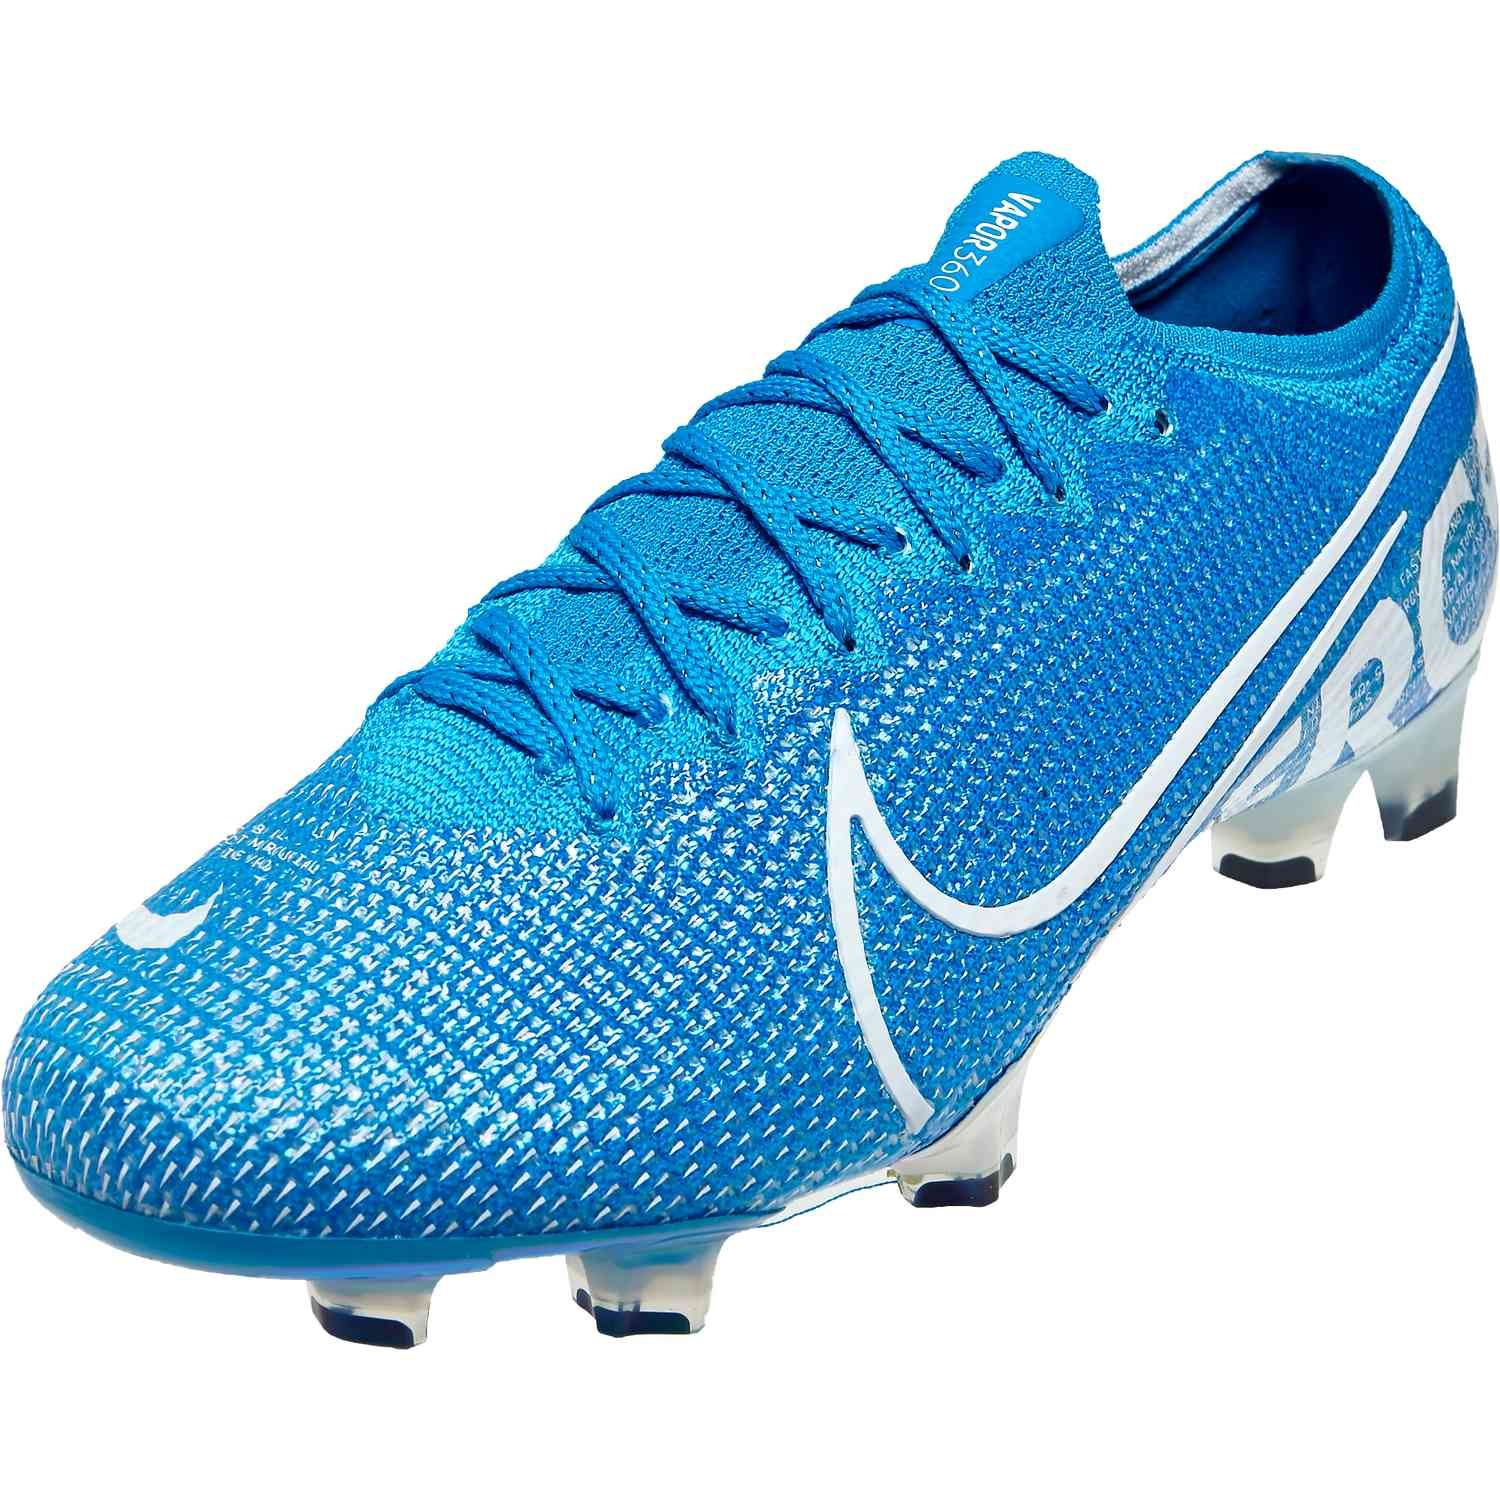 Nike Mercurial Vapor 13 Elite Fg New Lights Soccerpro Soccer Boots Adidas Soccer Shoes Nike Soccer Shoes